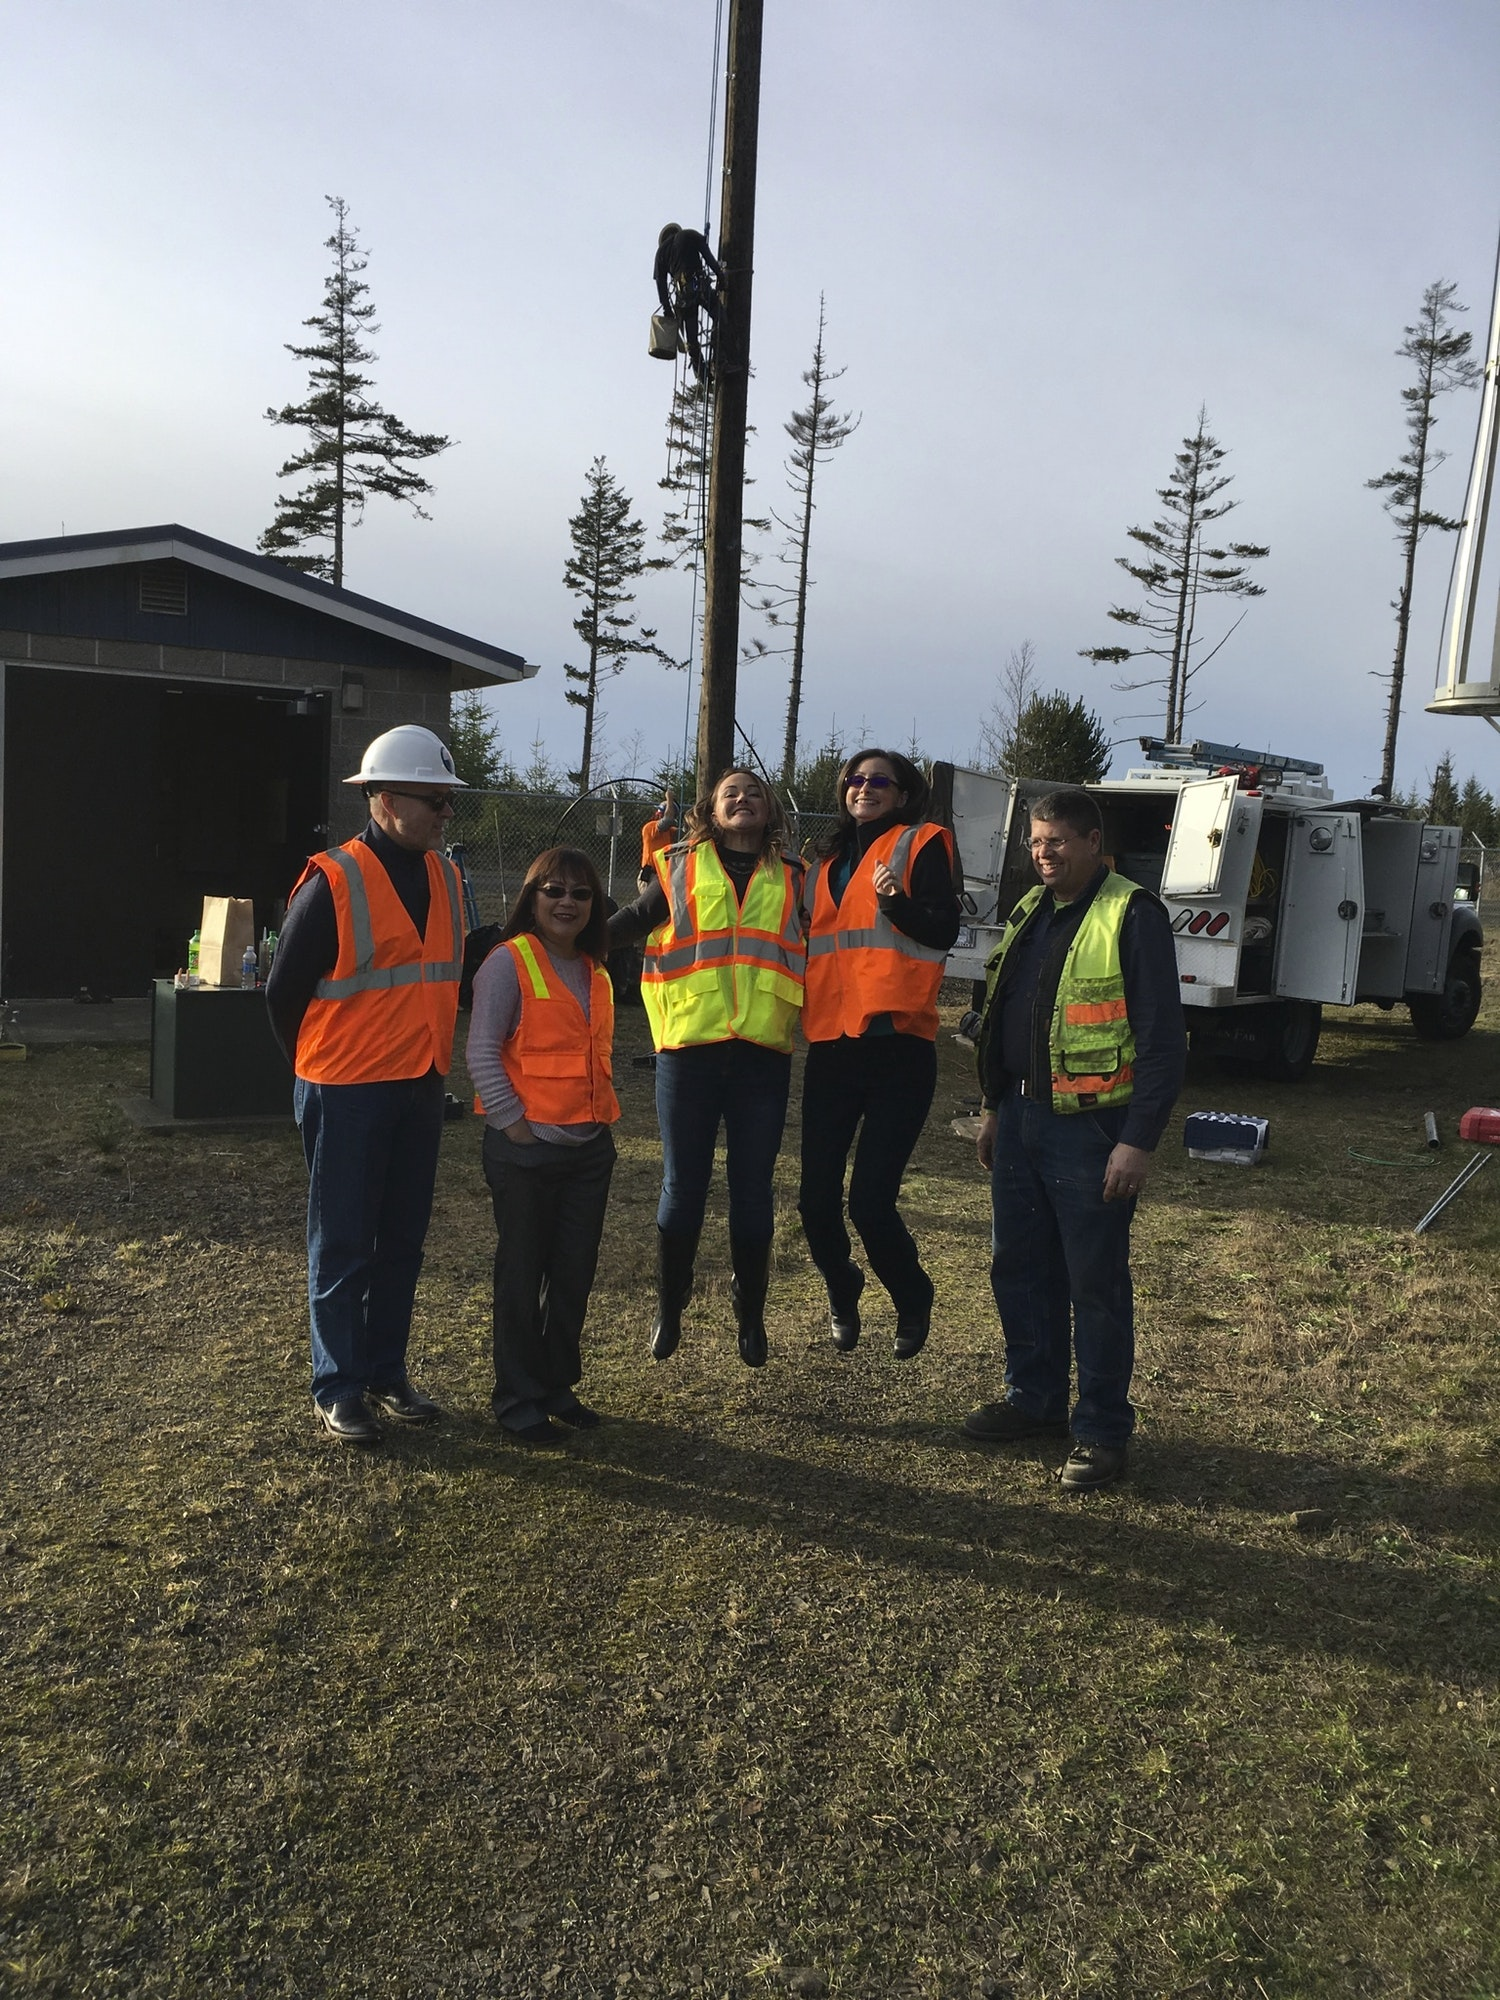 Seal Rock Water District staff with safety equipment on with two employees jumping in air